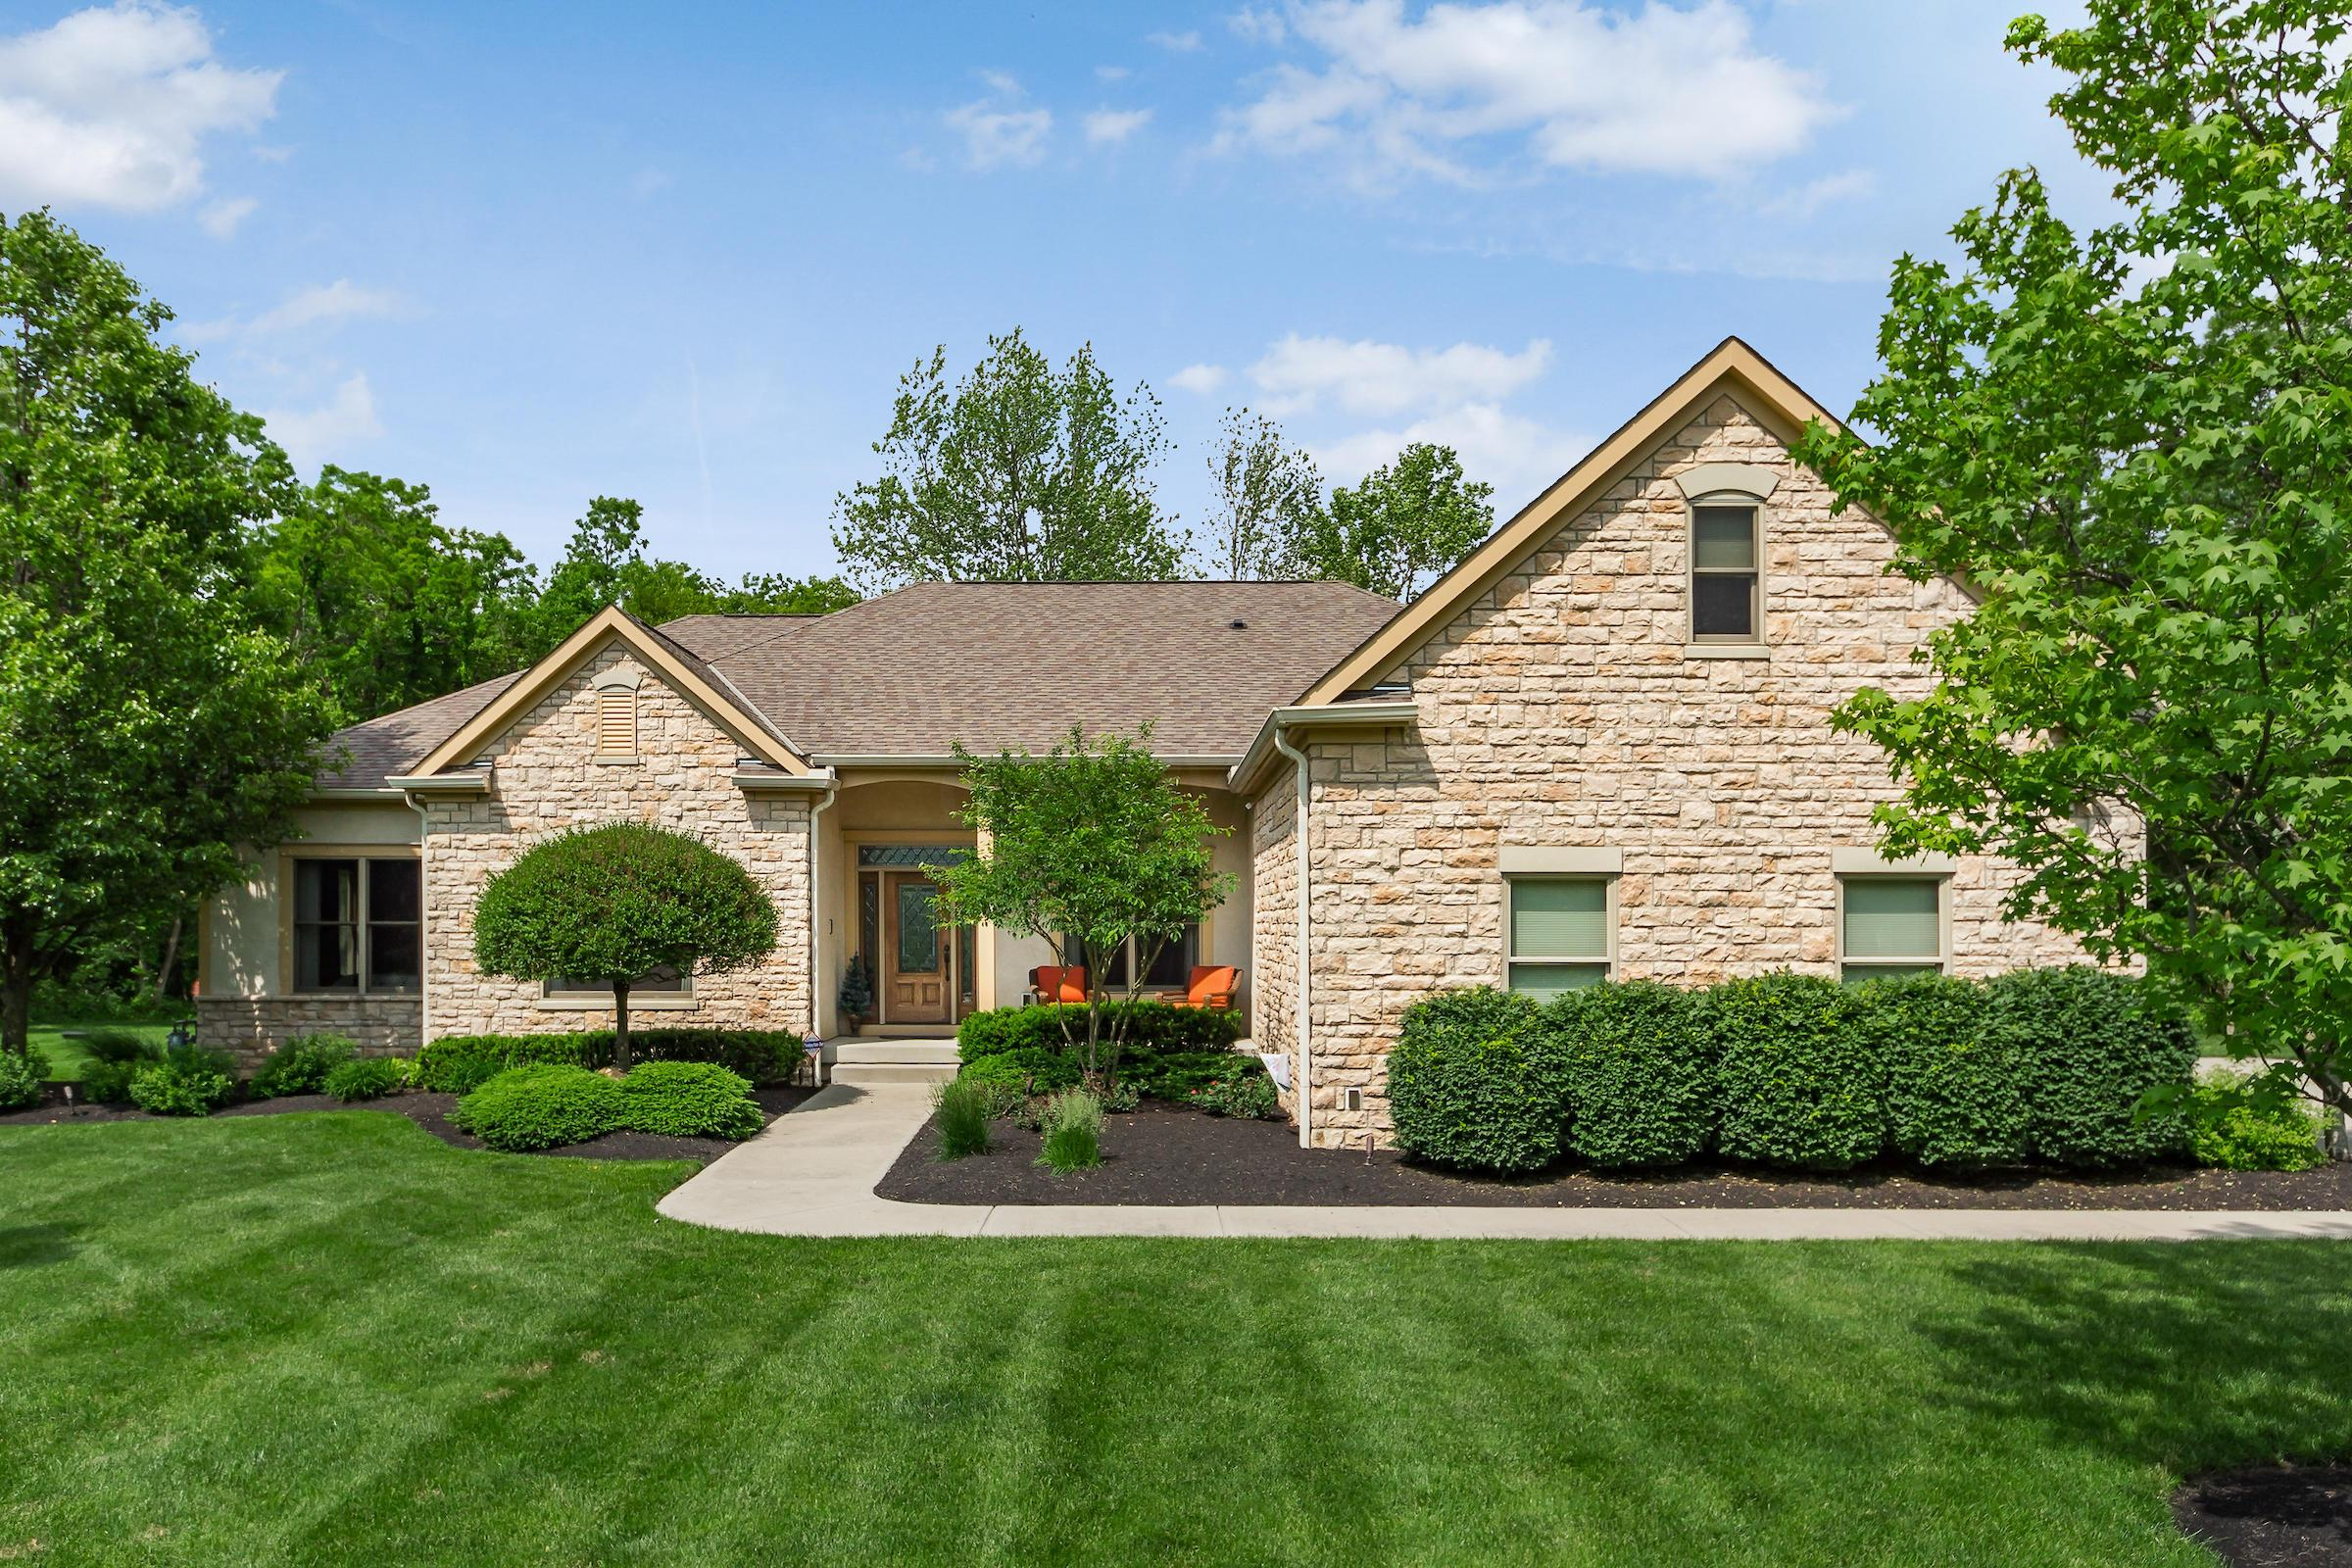 Photo of 7923 Big Walnut Road, Westerville, OH 43082